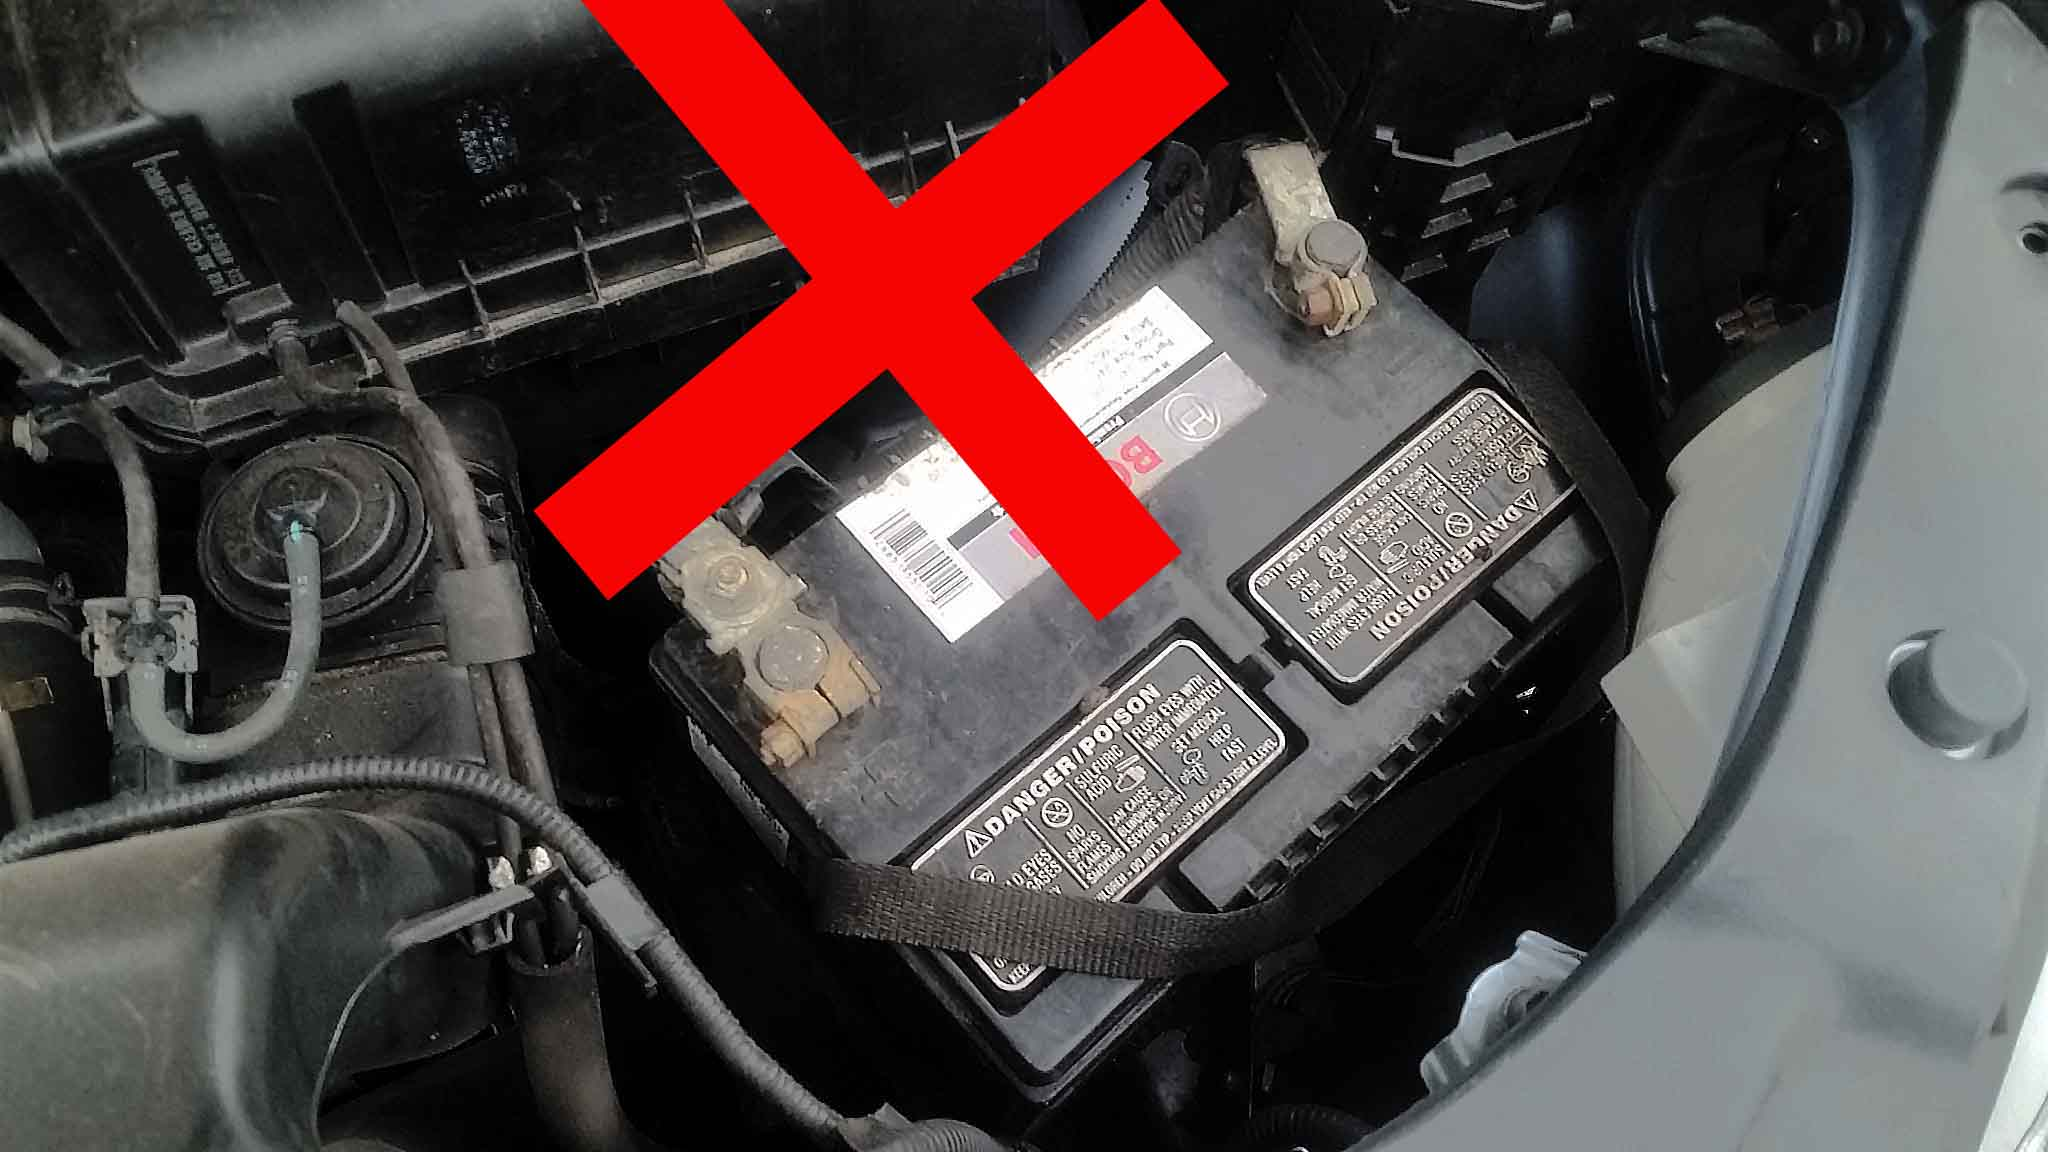 car battery not held down would move around and would get destroyed much quicker.